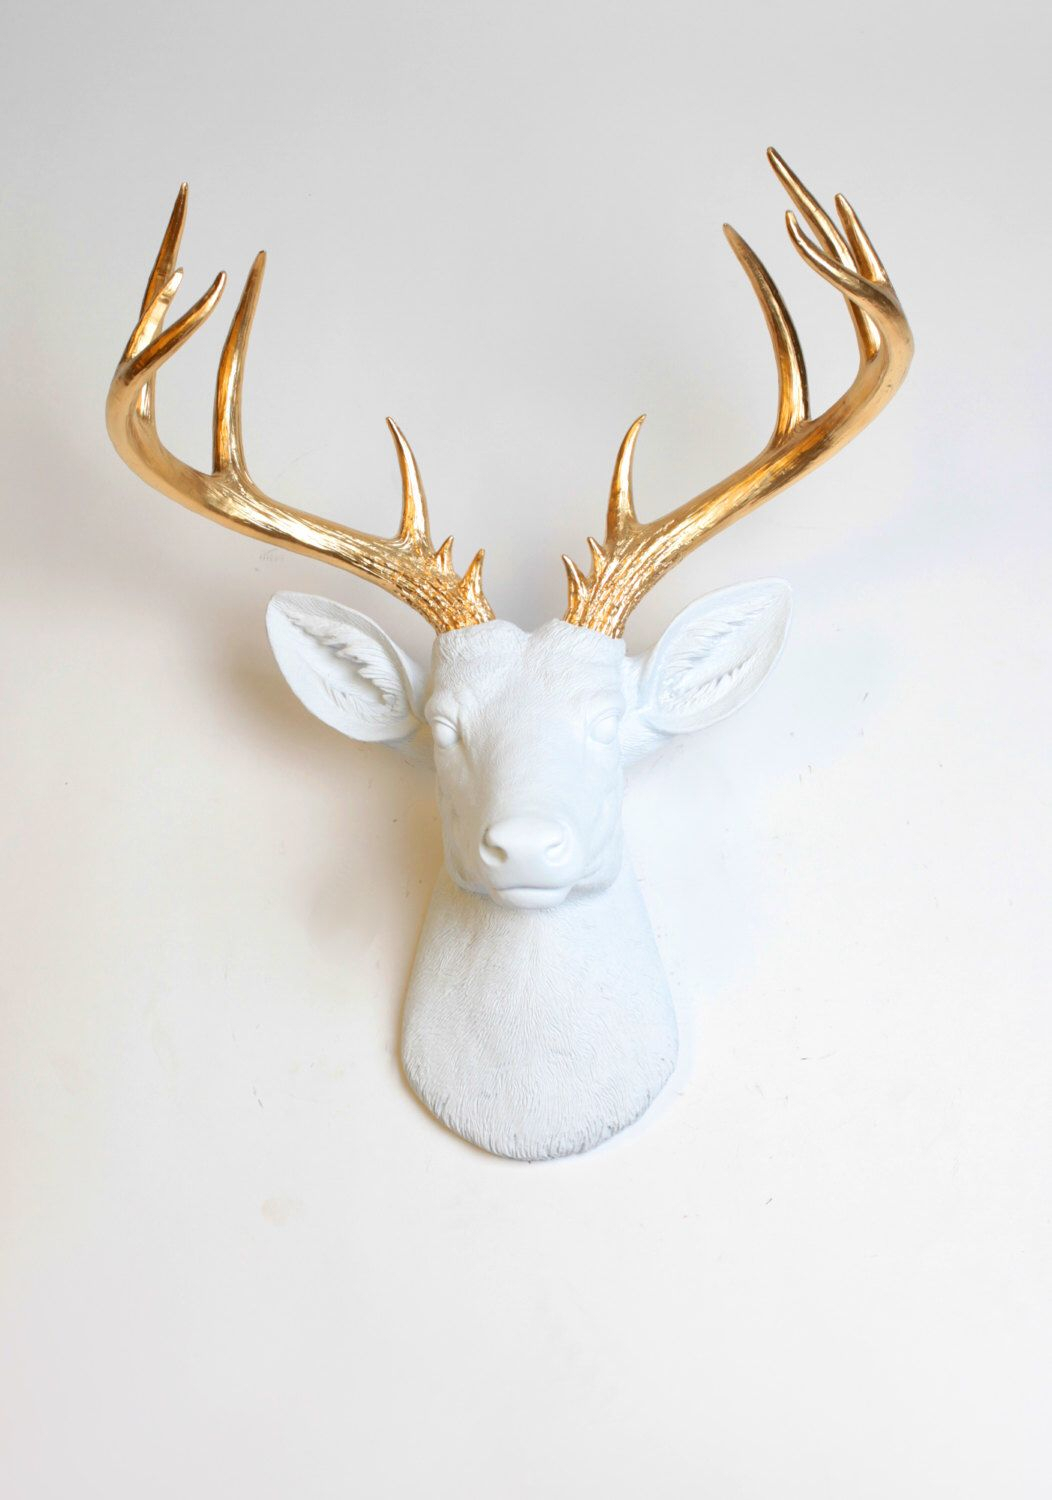 Popular Large Deer Head Faux Taxidermy Wall Decor Pertaining To Deer Head Wall Mount Decor – The Xl Alfred – White And Gold Deer (Gallery 7 of 20)